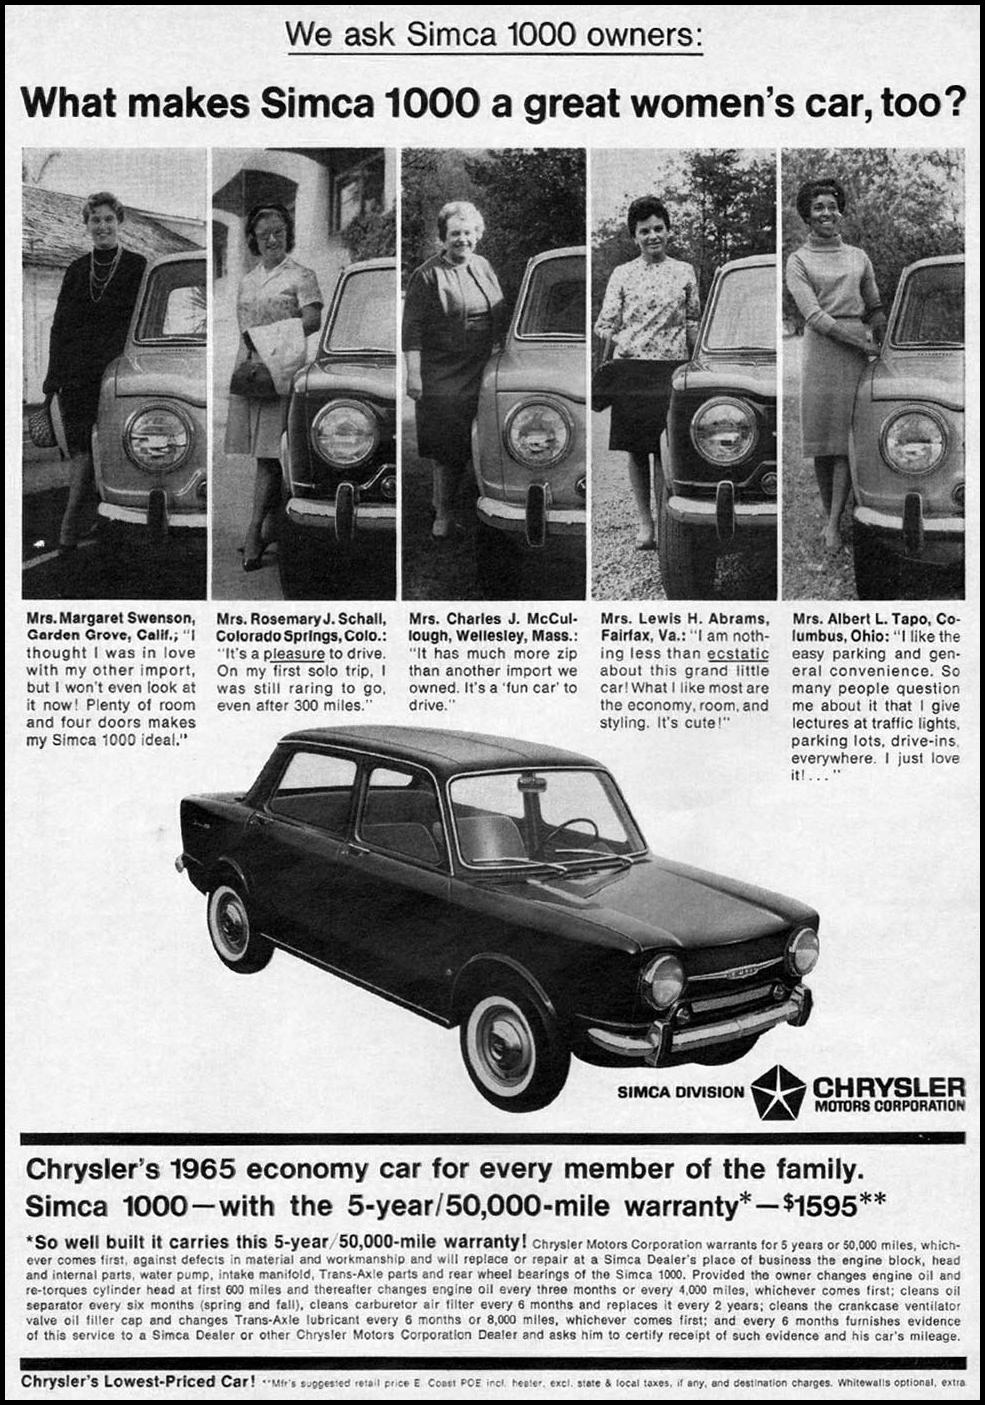 SIMCA AUTOMOBILES